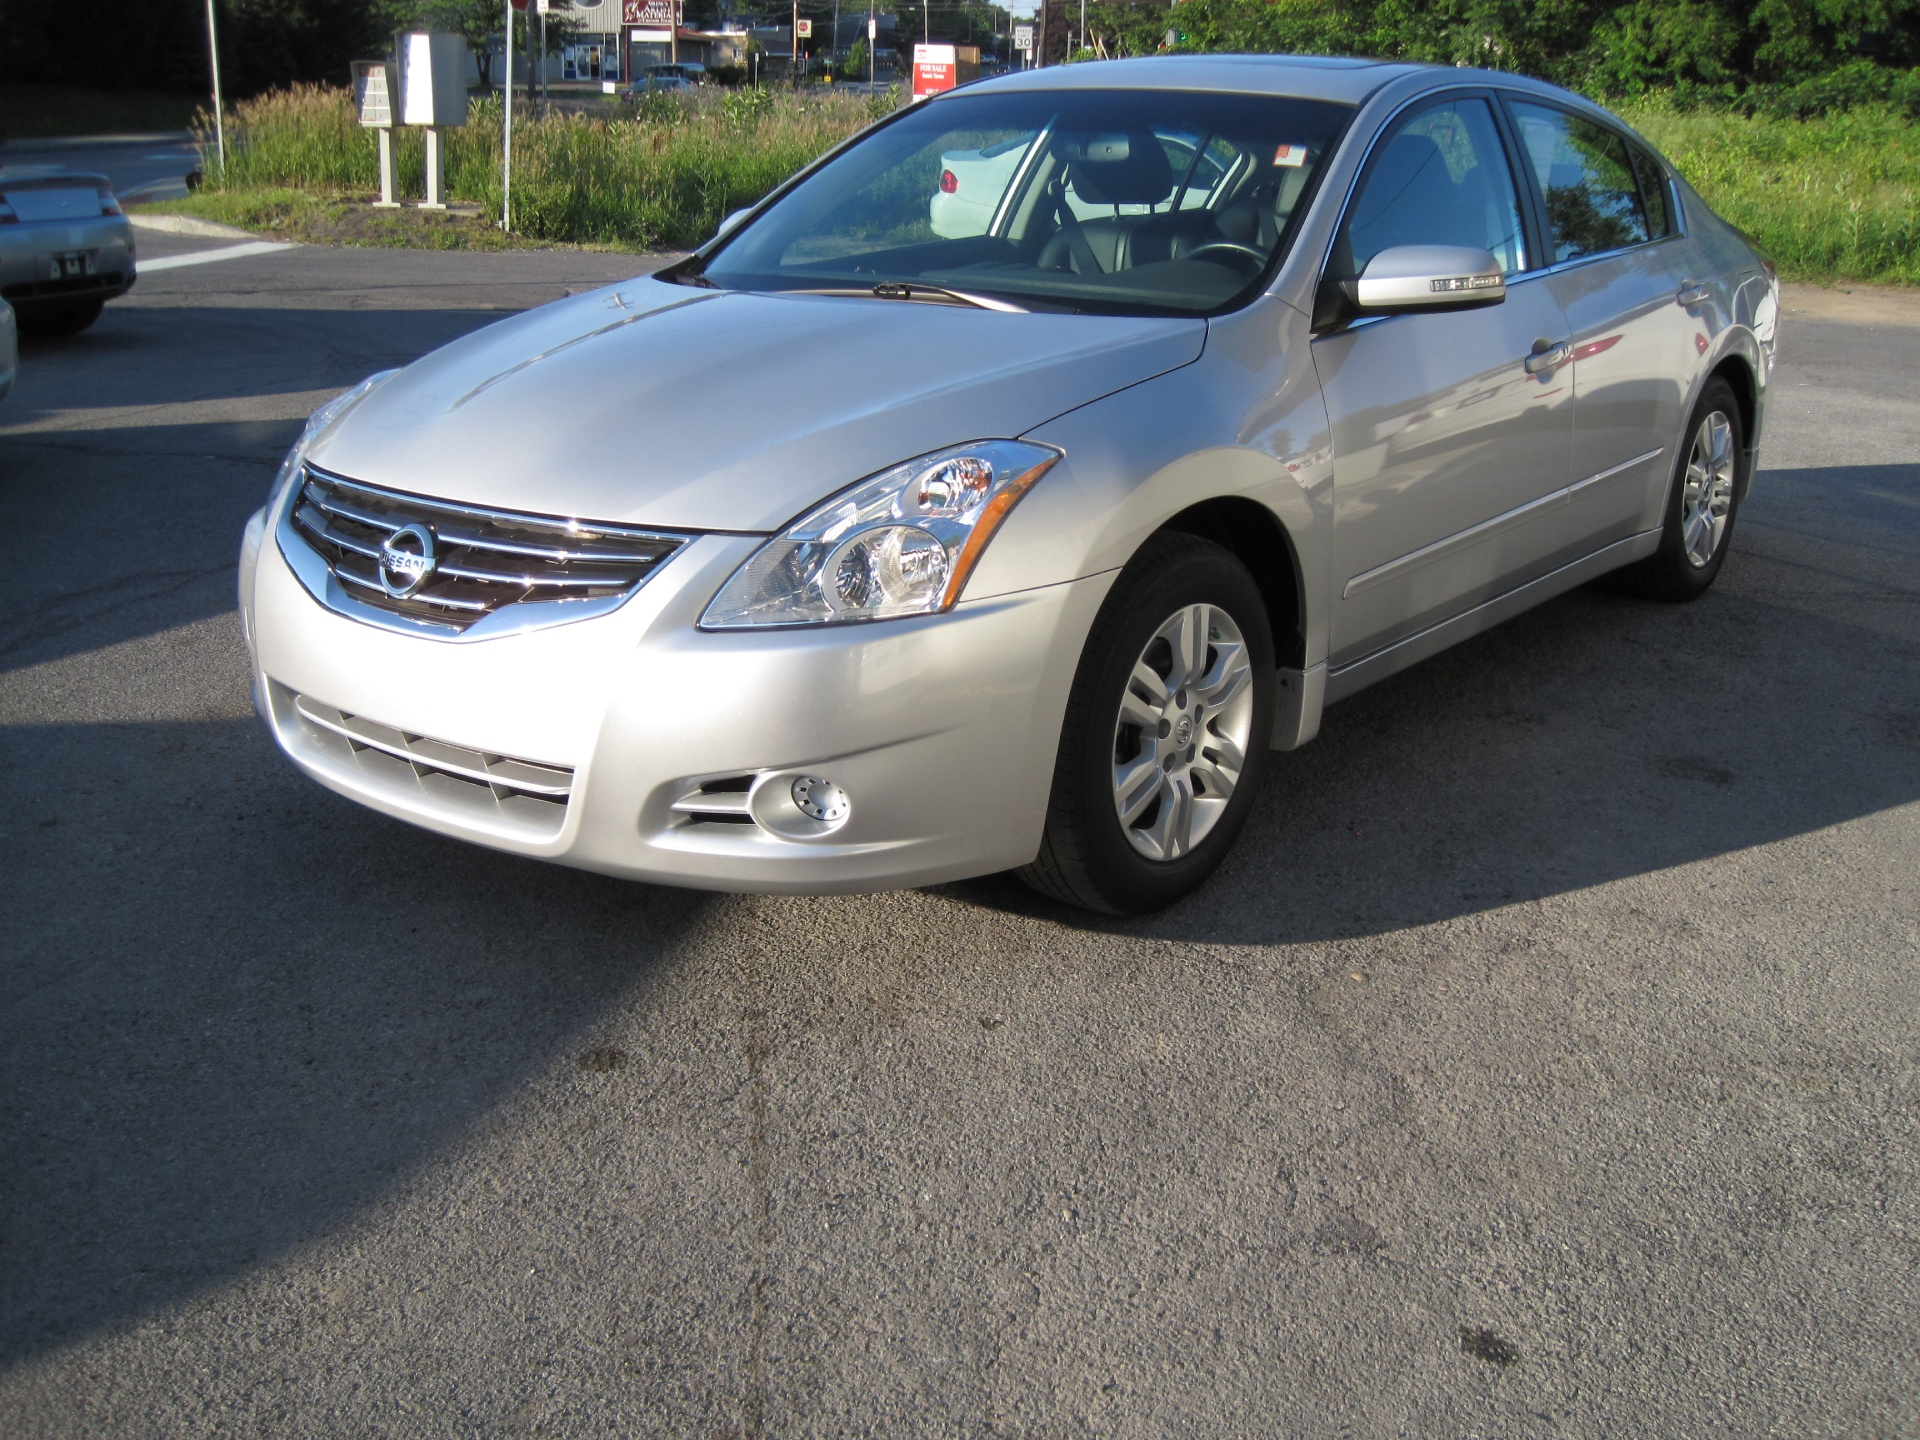 2012 nissan altima 2 5 sl loaded leather sunroof heated seats back up camera stock 15098 for. Black Bedroom Furniture Sets. Home Design Ideas